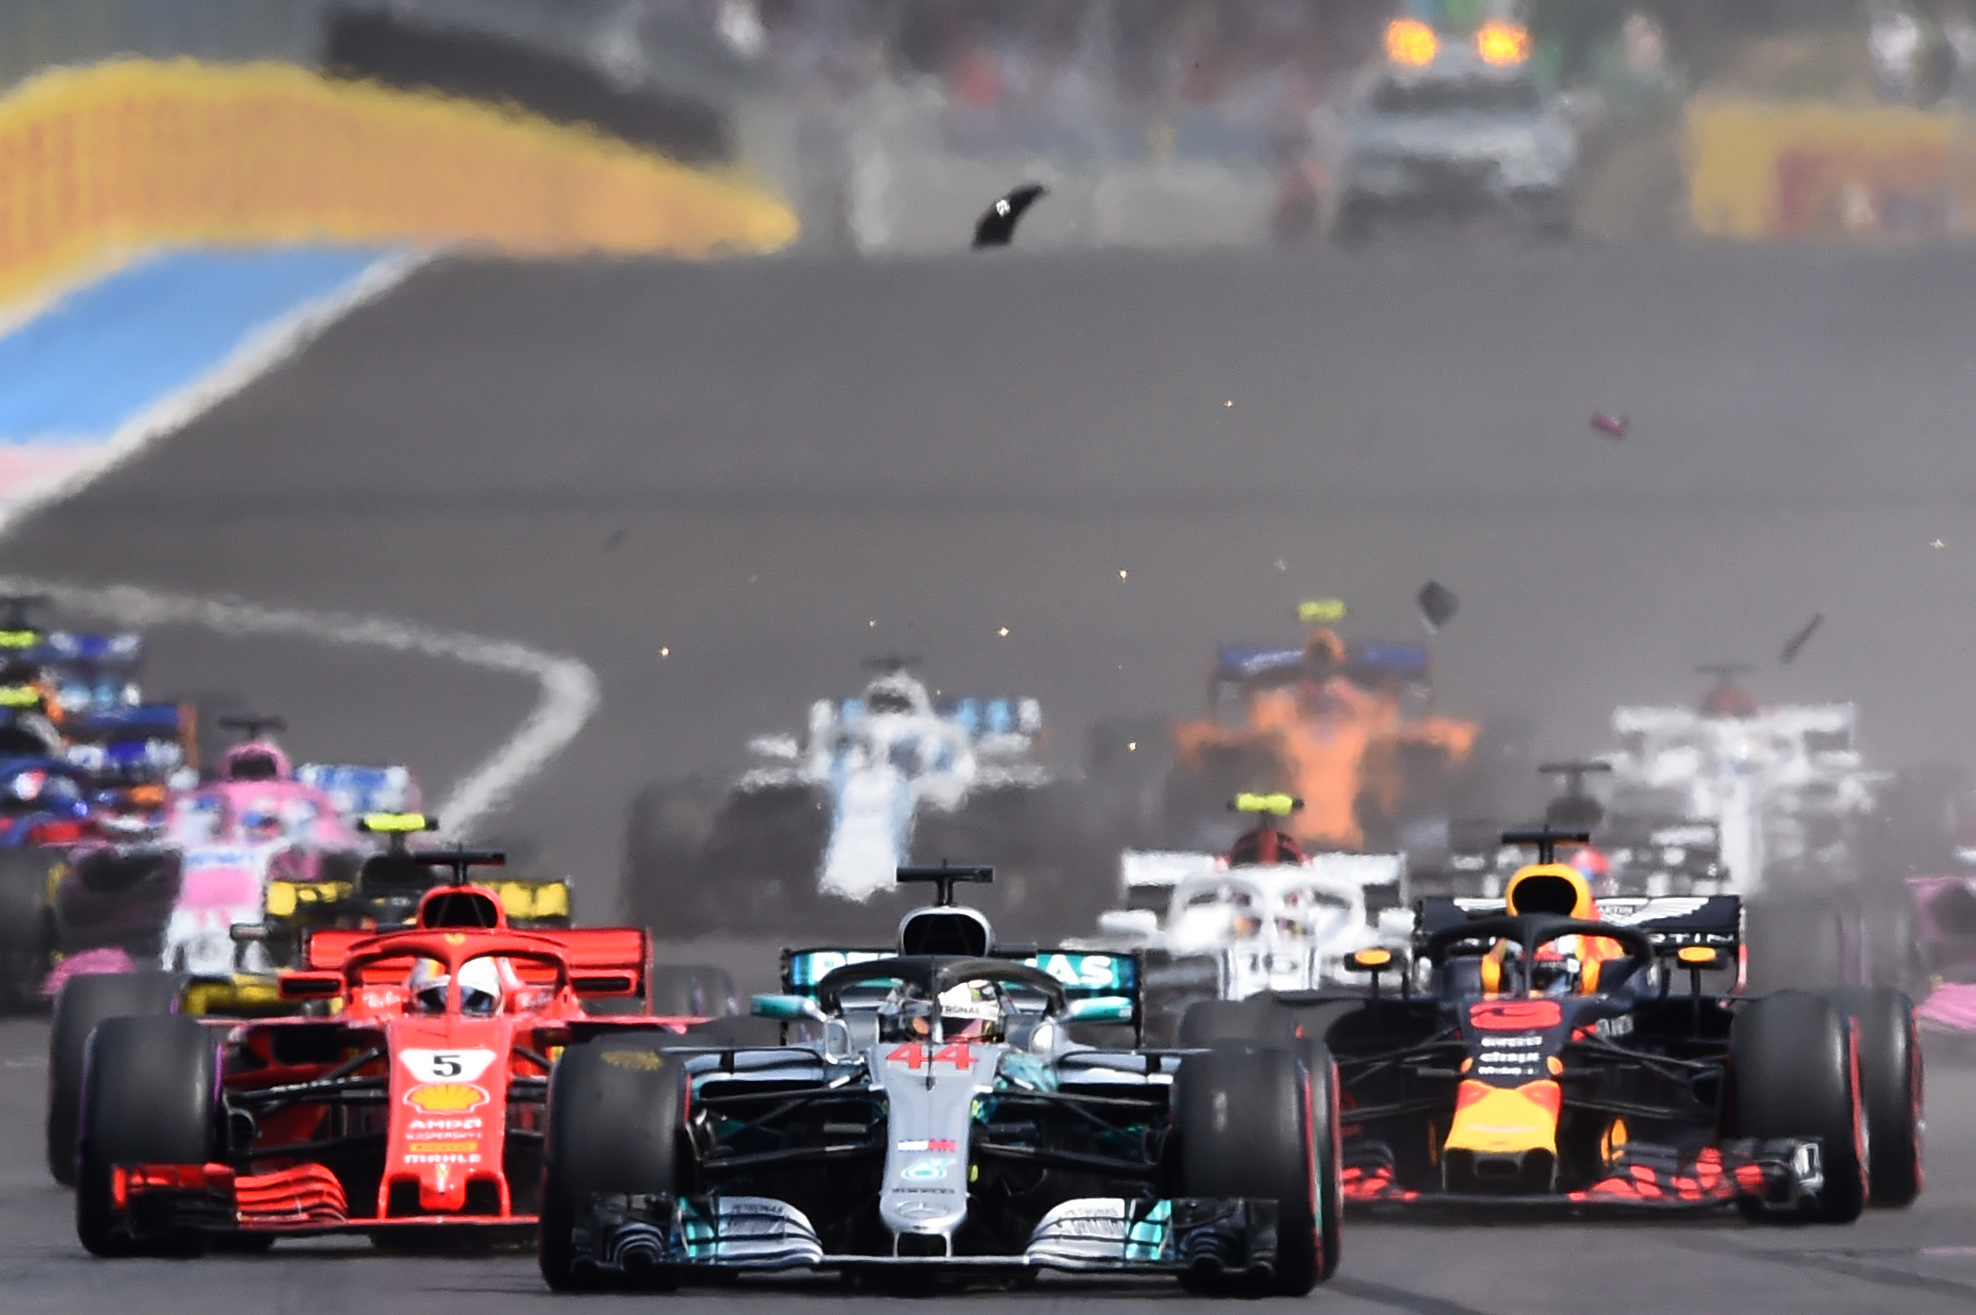 Car parts fly as drivers crash at the start of the French Grand Prix Pic: BORIS HORVAT/AFP/Getty Images